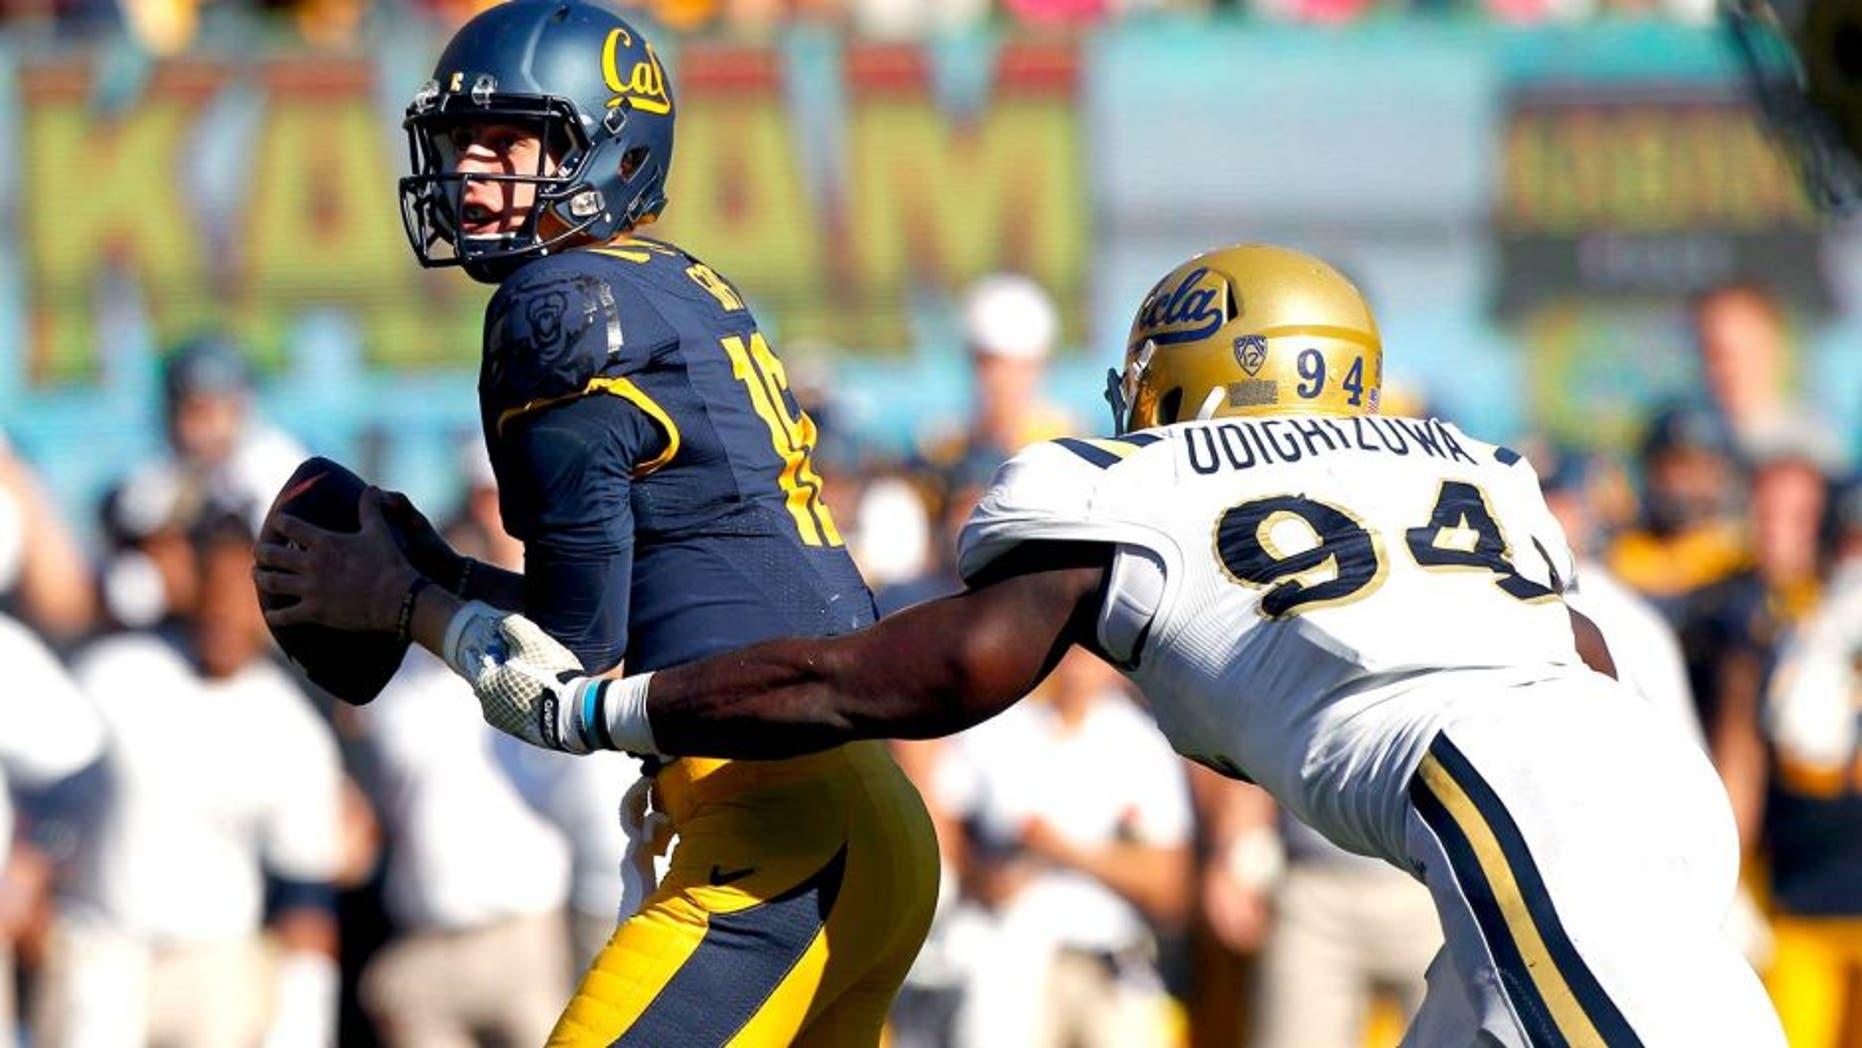 Oct 18, 2014; Berkeley, CA, USA; California Golden Bears quarterback Jared Goff (16) is unable to elude UCLA Bruins defensive lineman Owamagbe Odighizuwa (94) in the fourth quarter at Memorial Stadium. The Bruins defeated the Golden Bears 36-34. Mandatory Credit: Cary Edmondson-USA TODAY Sports